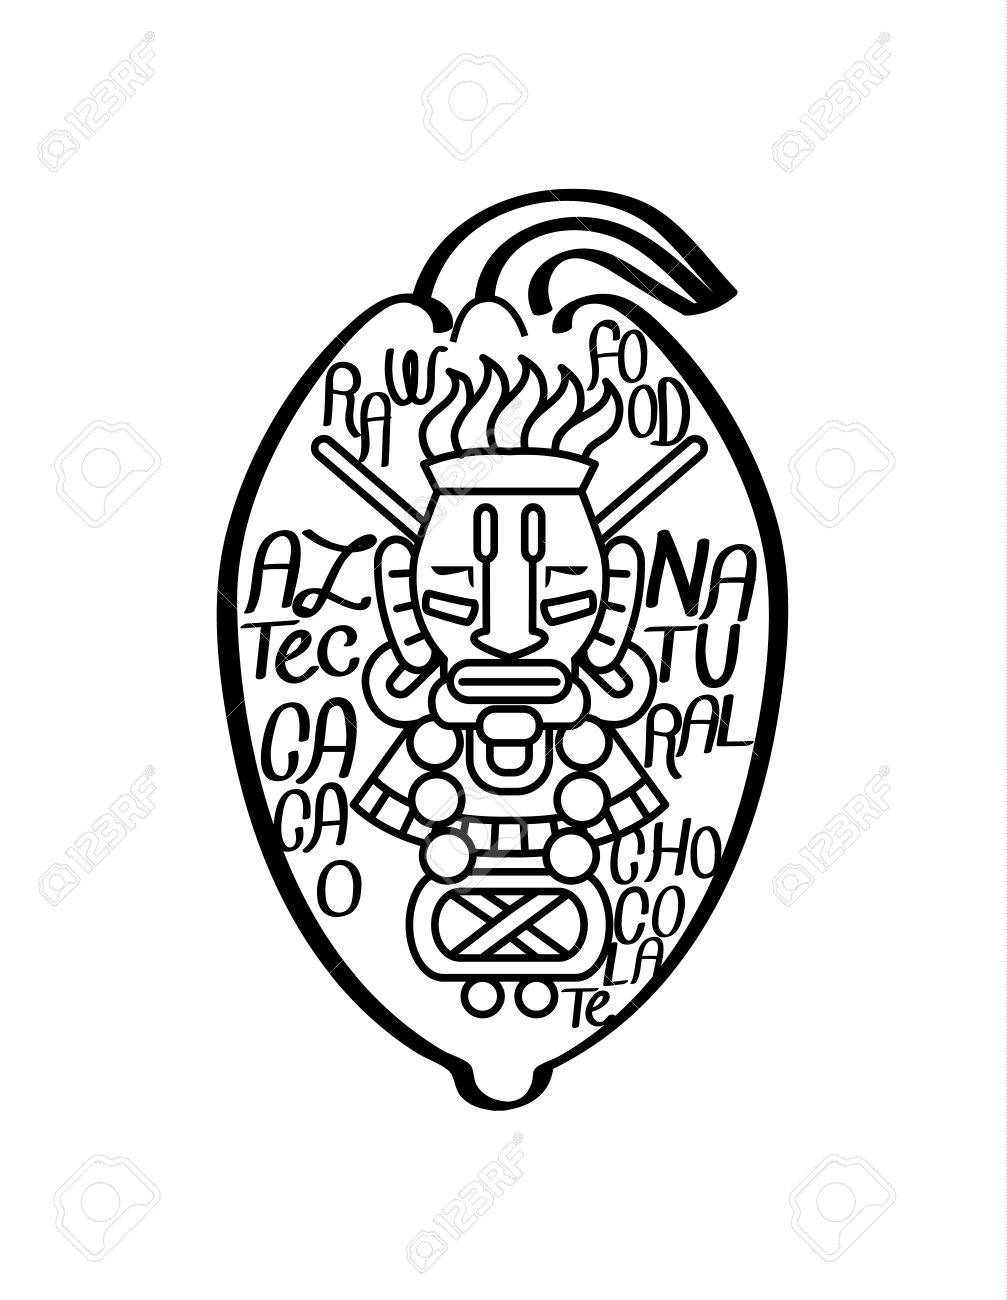 1007x1300 Vector Illustration Sketch Drawing Aztec Cacao Bean, Leaves